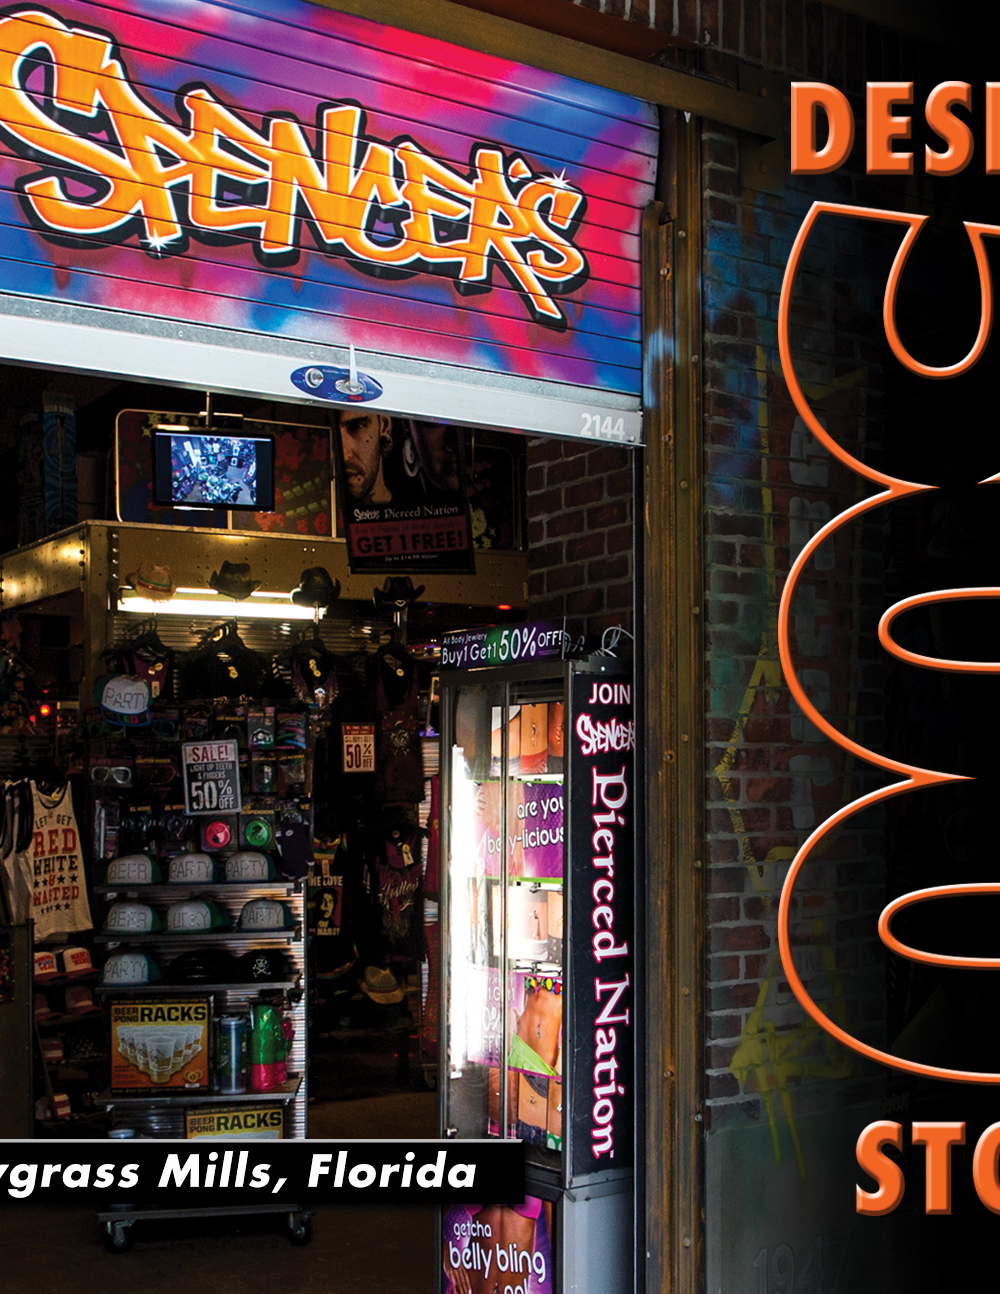 Company Information > About - Spencer's